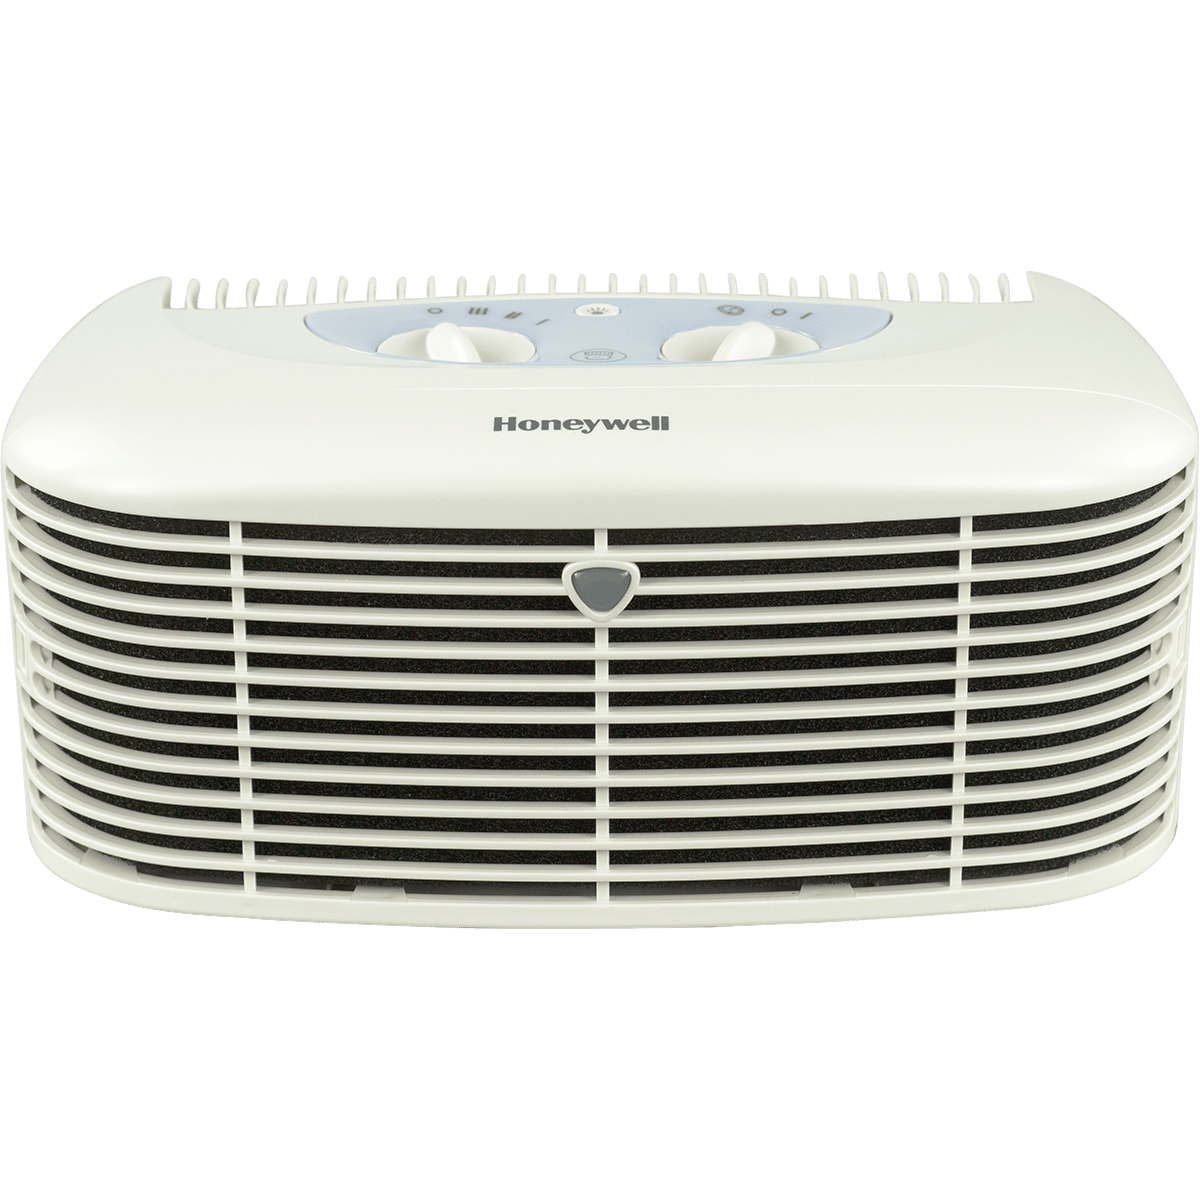 Honeywell Permanent HEPAClean Compact Air Purifier (HHT-011) ho1605